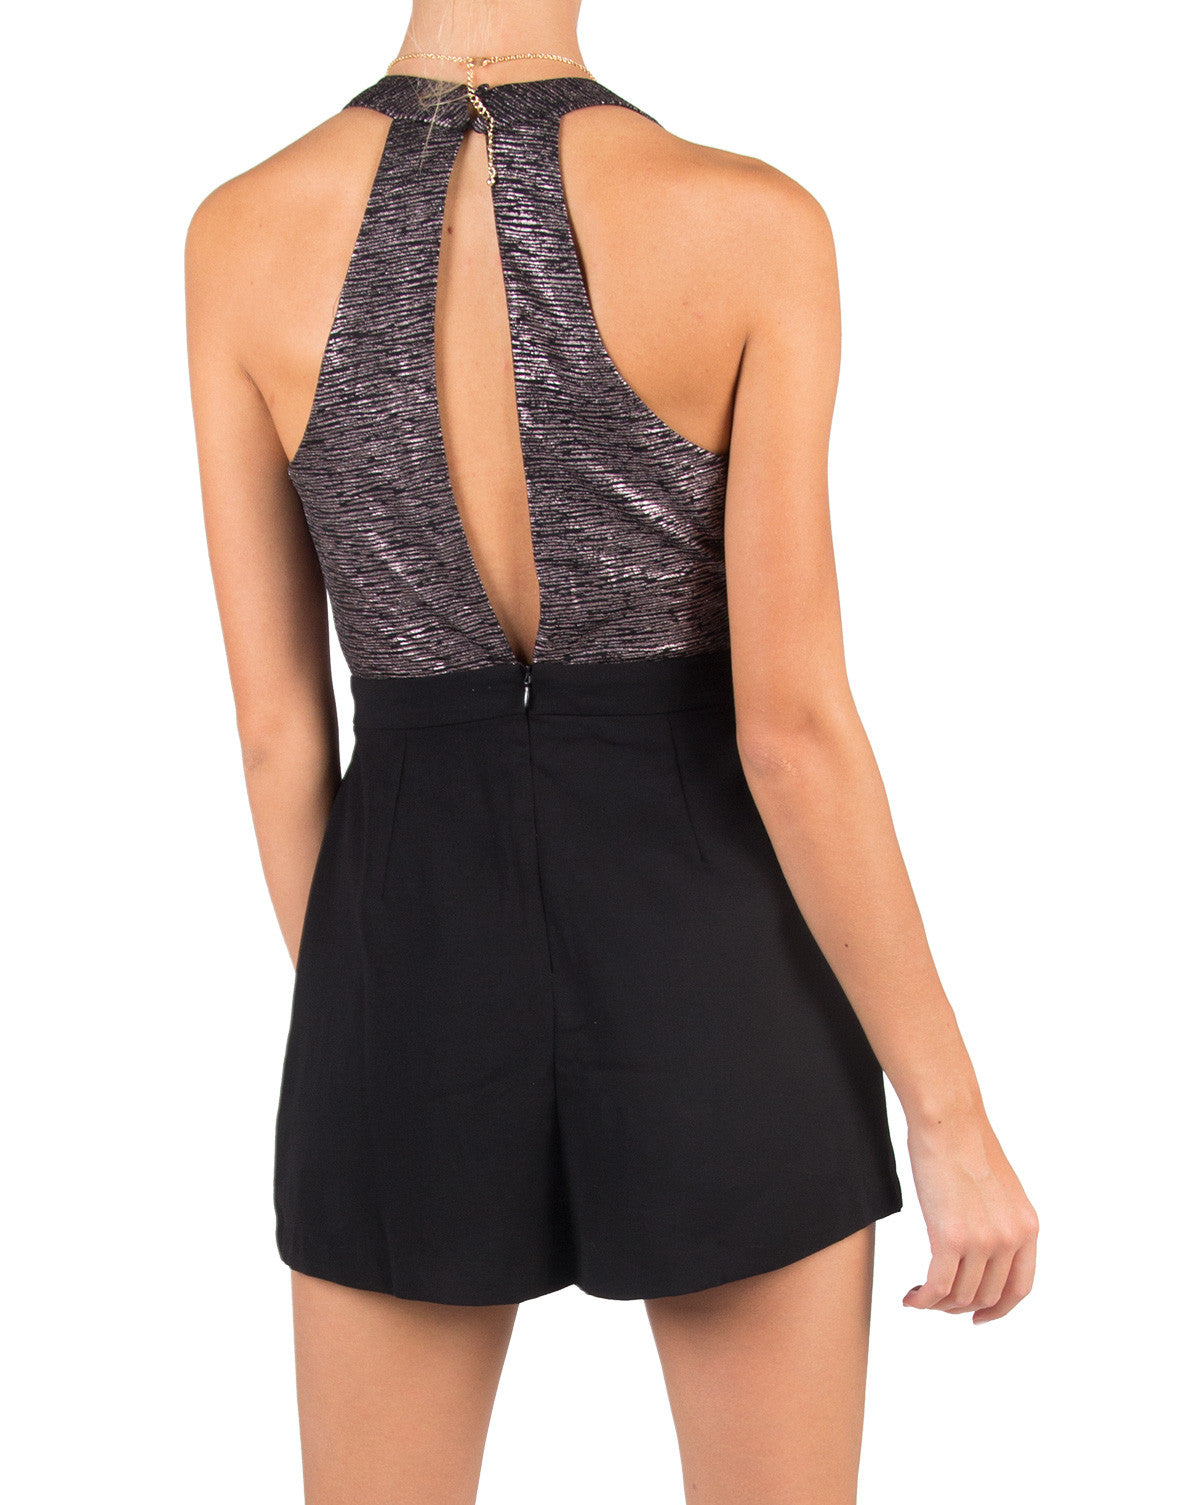 Lush Clothing - Metallic Cross Front Romper - Small - 2020AVE